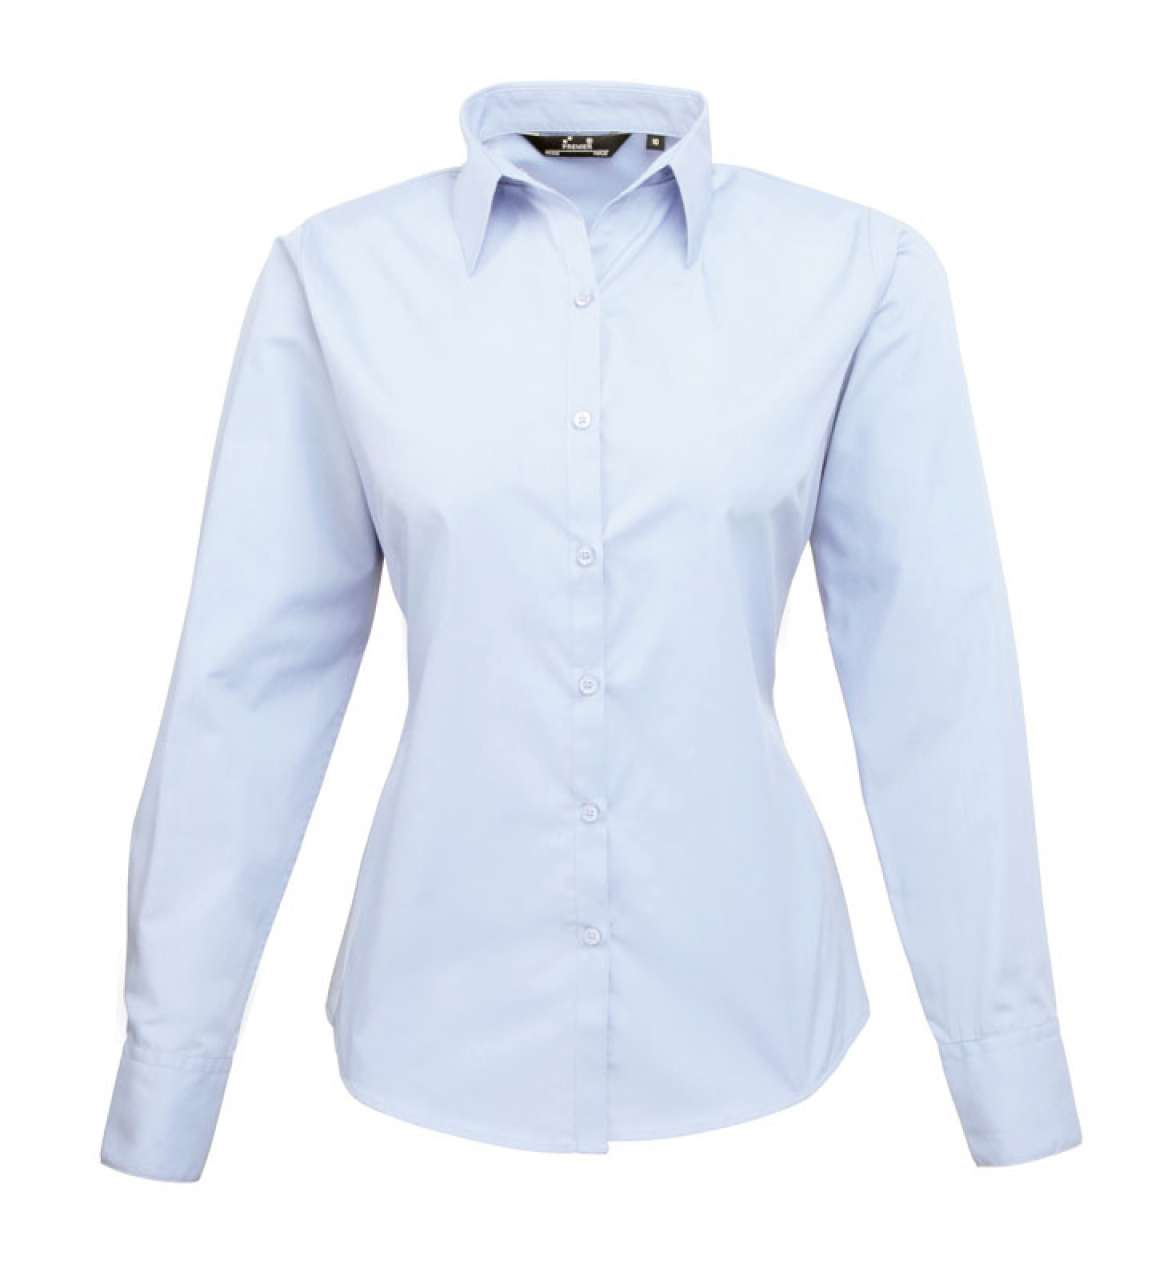 WOMEN'S LONG SLEEVE POPLIN BLOUSE